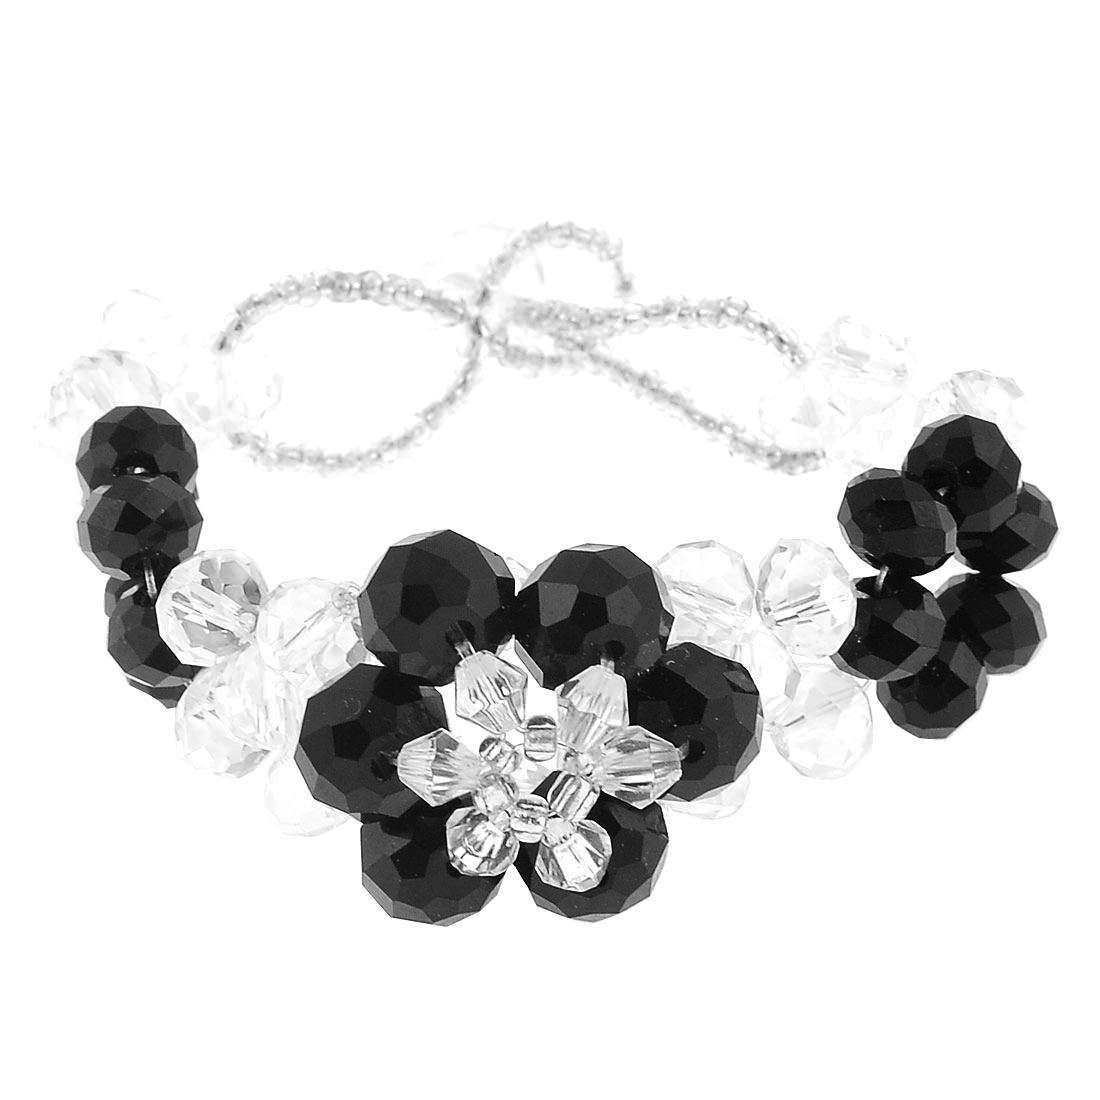 Faux Faceted Crystal Wrist Bracelet Bangle Clear Black for Women